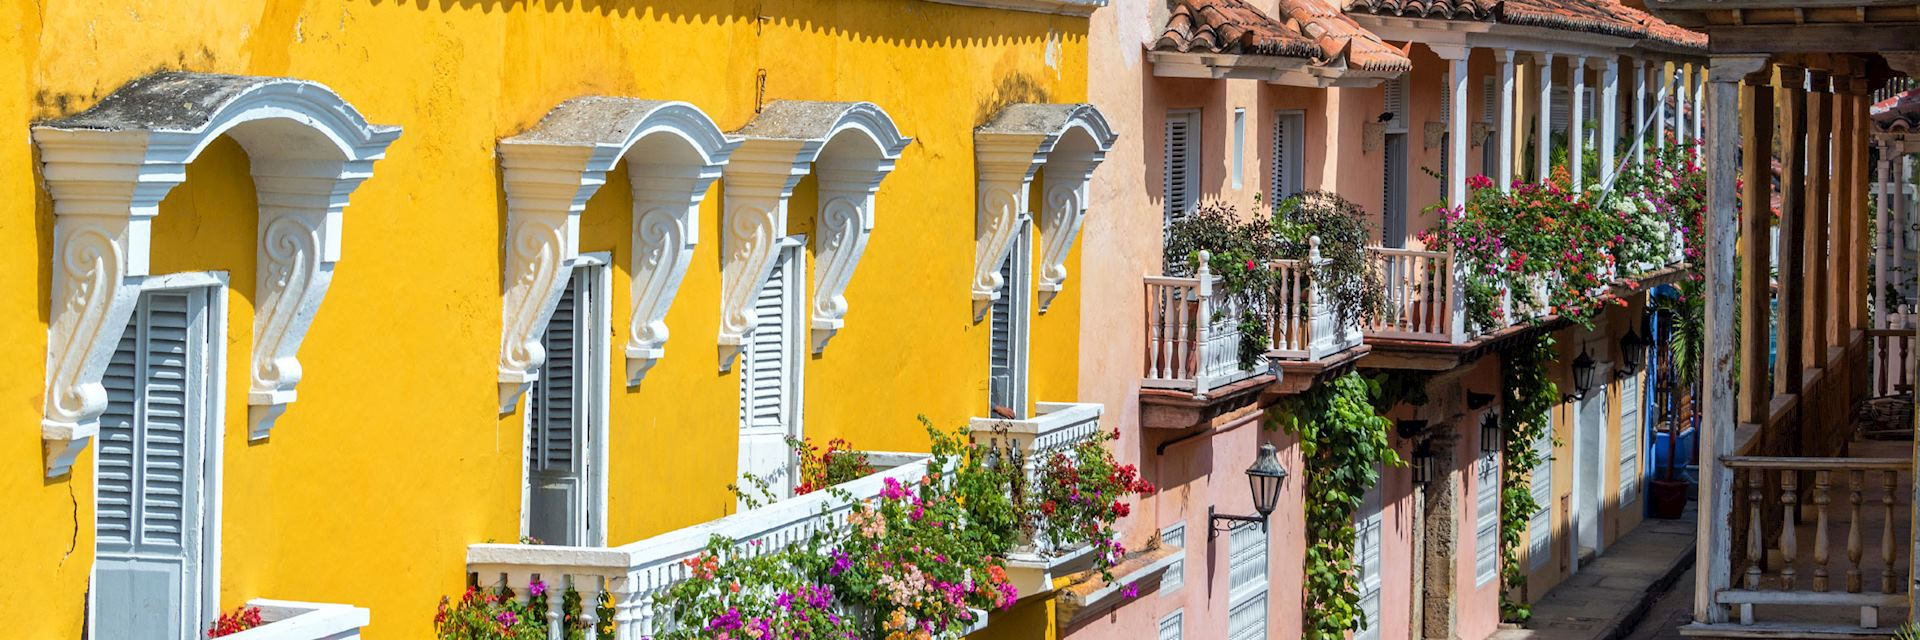 Colonial style balconies in Cartagena